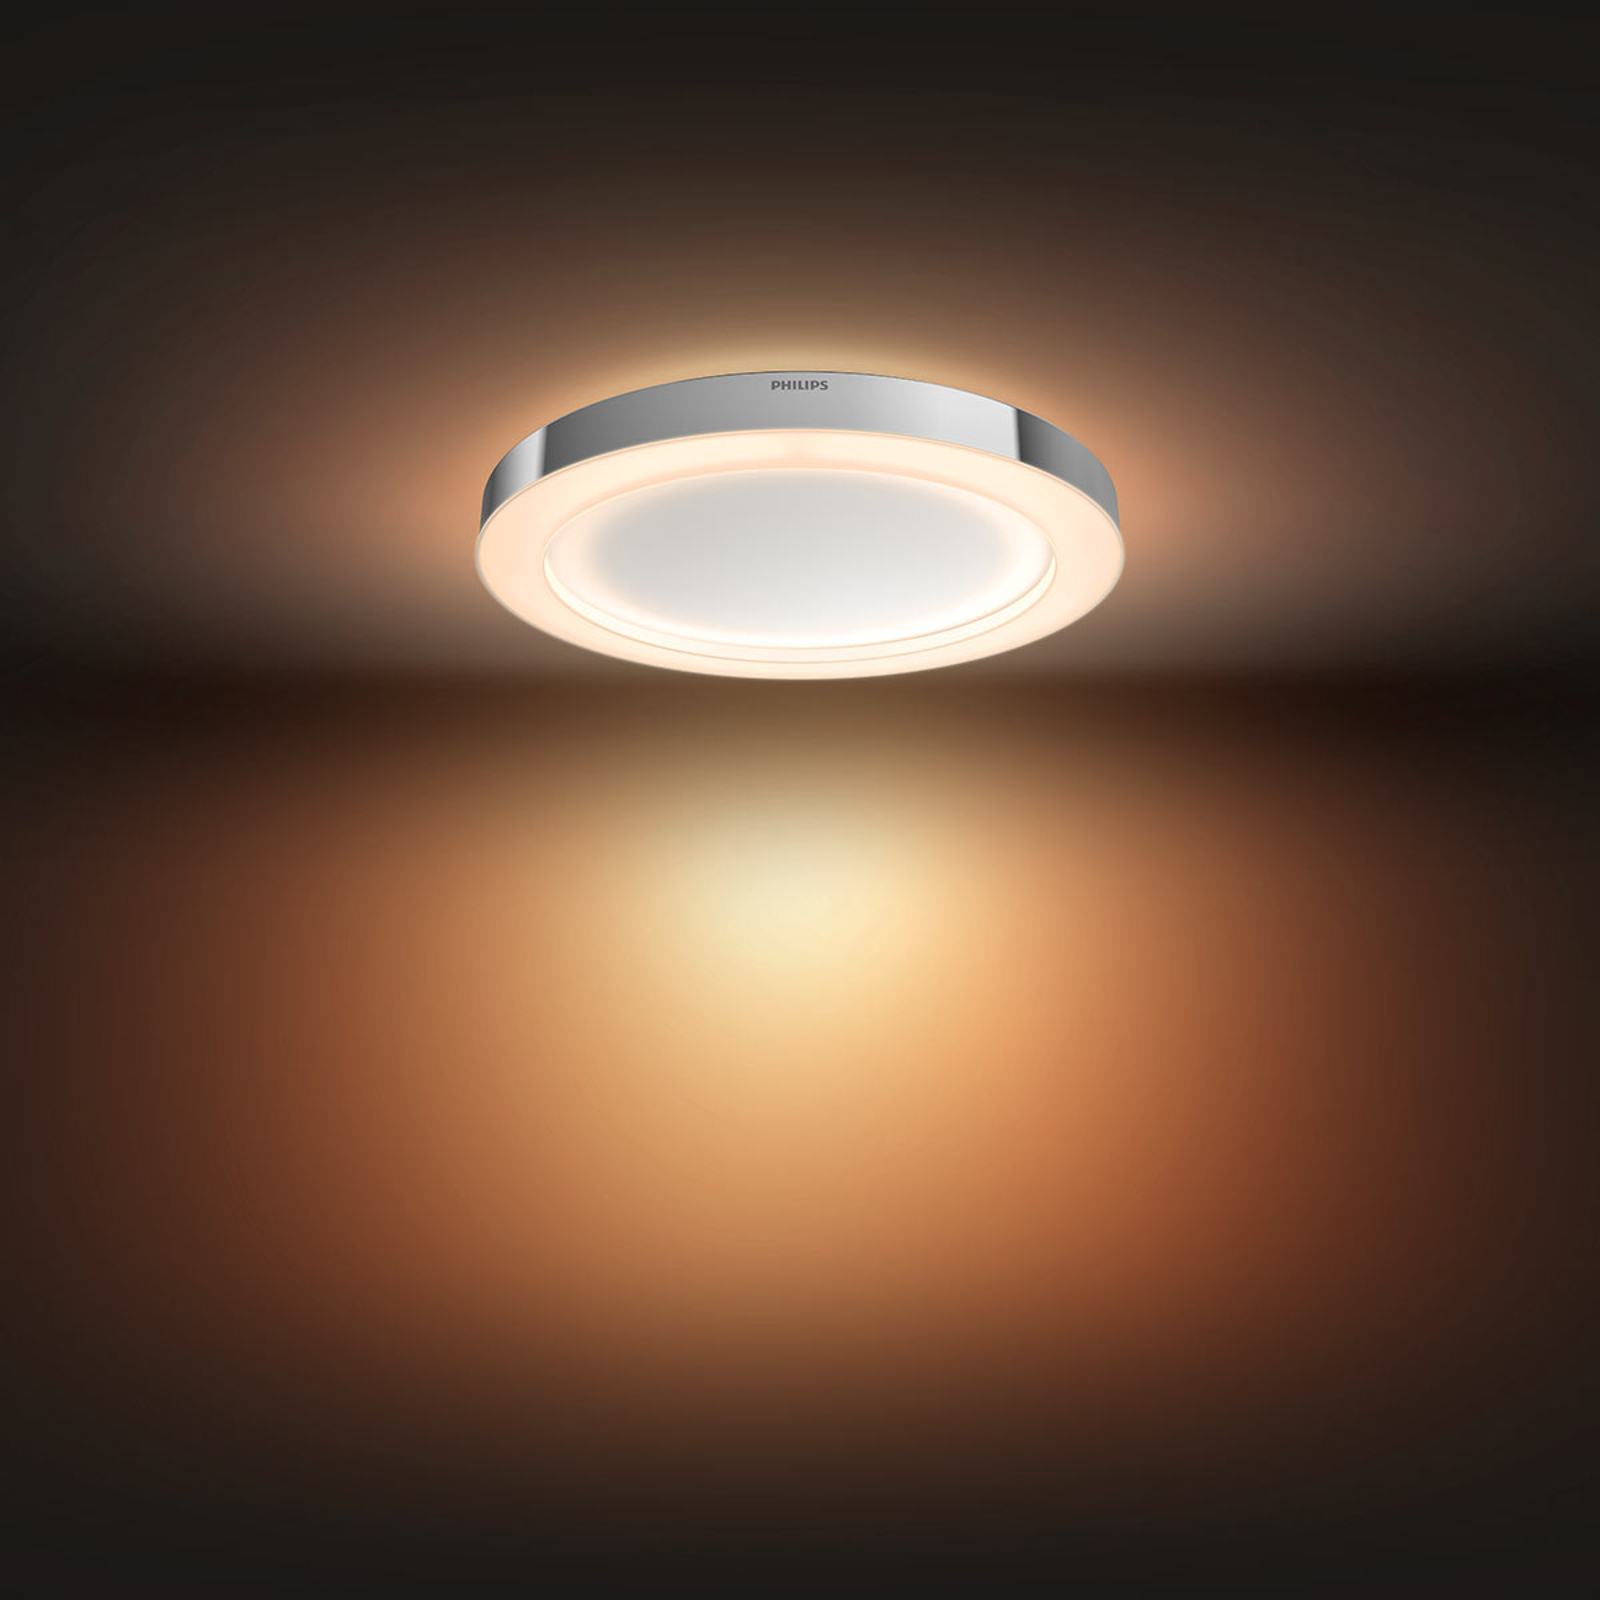 Philips Hue White Ambiance Adore Bad Deckenlampe Lampenwelt At